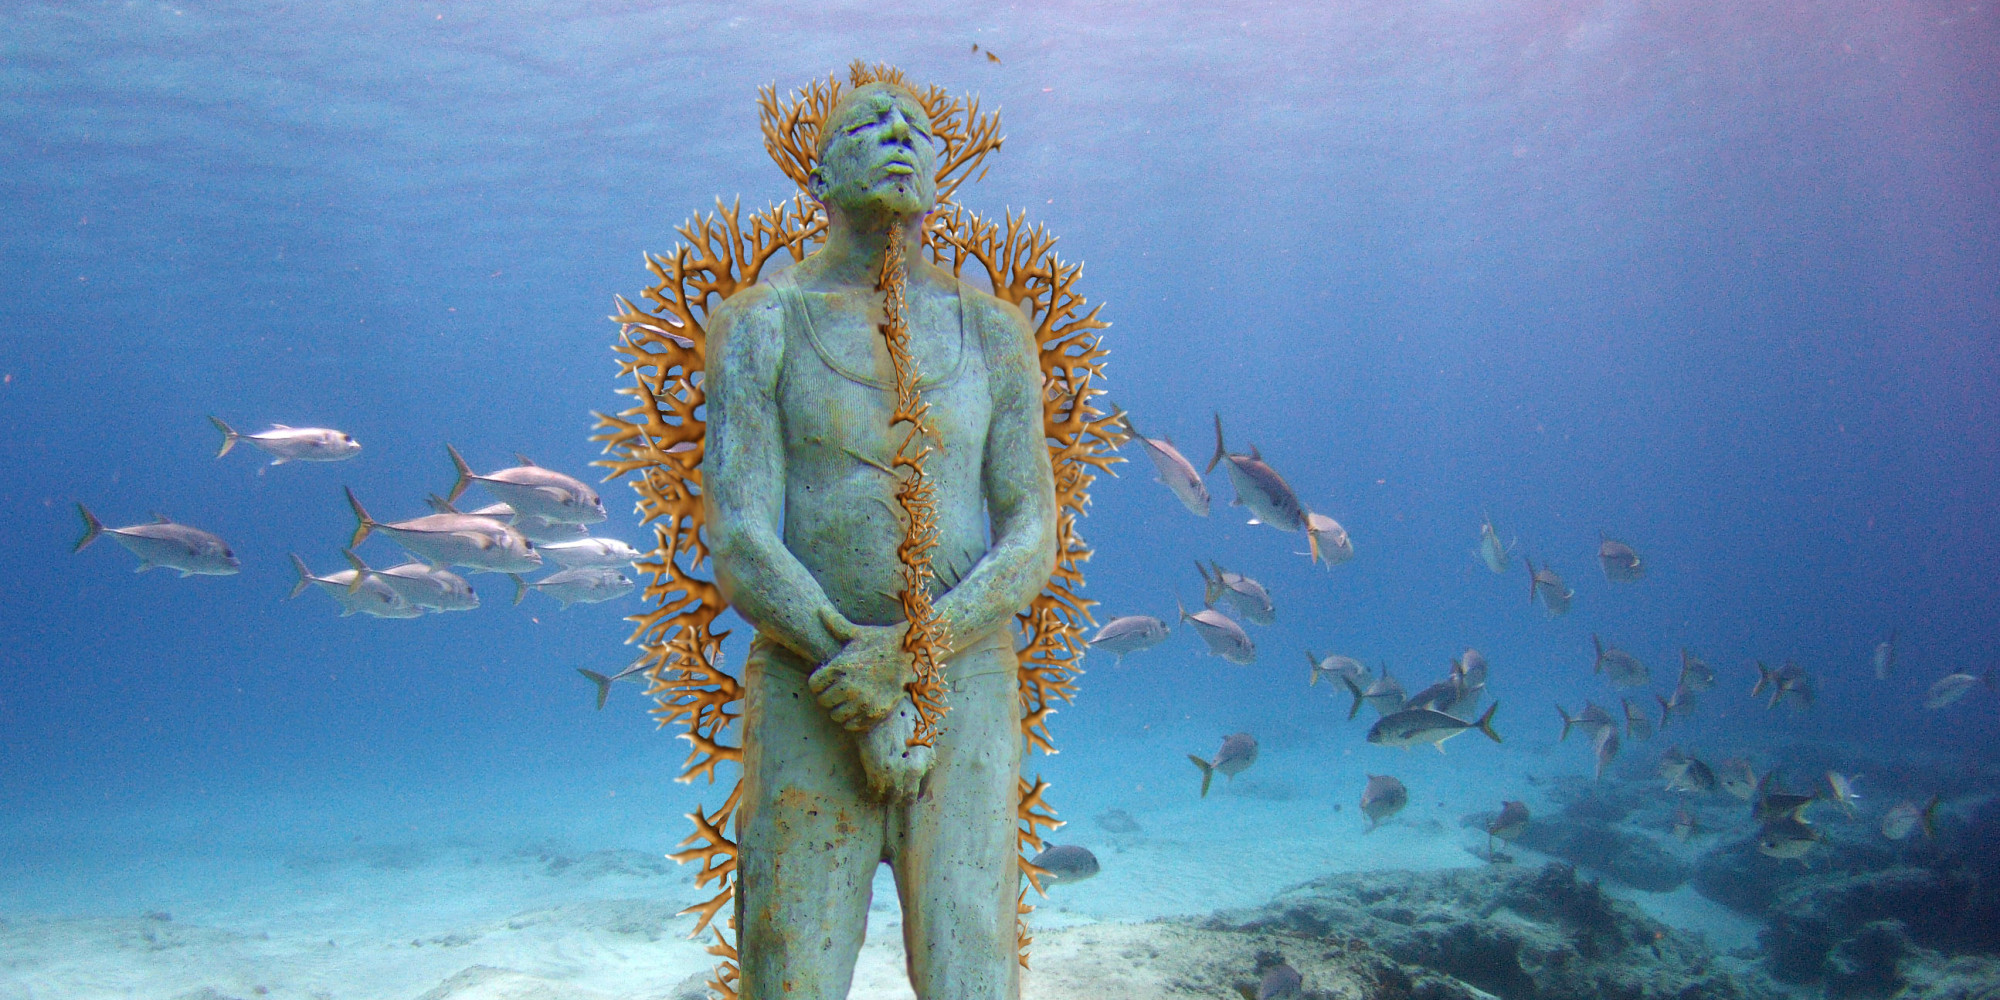 CANCUN, MEXICO - JANUARY 31: ***EXCLUSIVE*** Hombre en Llamas (Man on Fire) depicts a lone figure standing upright and defiant. The sculpture is installed 8m deep in the clear Caribbean waters surrounding the island of Isla Mujeres at a location named Manchiones. The cement figure has been drilled with over 75 holes and is currently being planted with live cuttings of fire coral (Millepora alcicorni). January 31, 2005. Deep under the seas of the Mexican Caribbean these statues look like relics of an ancient civilisation. Located in the National Marine Park, on the west coast of Isla Mujeres, Punta Cancun and Punta Nizuc, it will be the world's largest undetwater sculpture museum. Showing three life size sculptures are the first of 400 that will be laid on the seabed over the next 13 months. Founded by Jaime Gonzalez Cano of The National Marine Park, Roberto Diaz of The Cancun Nautical Association and renowned British underwater sculptor Jason deCaires Taylor, the underwater museum is designed to celebrate the Mayan history of the region and act as an artificial reef. (Photo by Jason de Caires / Barcroft Media / Getty Images)